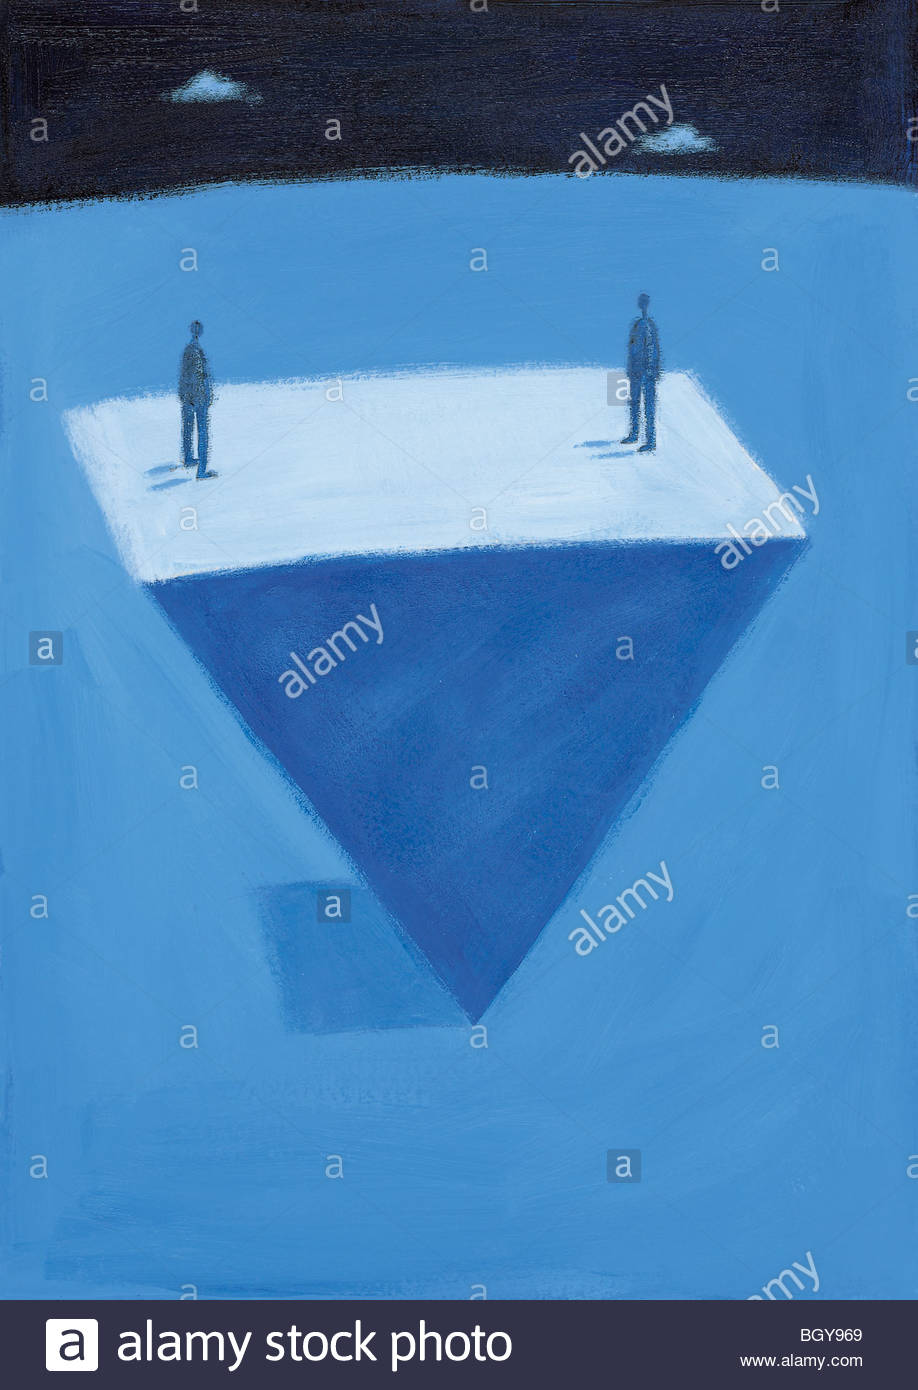 People standing on upside down triangle - Stock Image